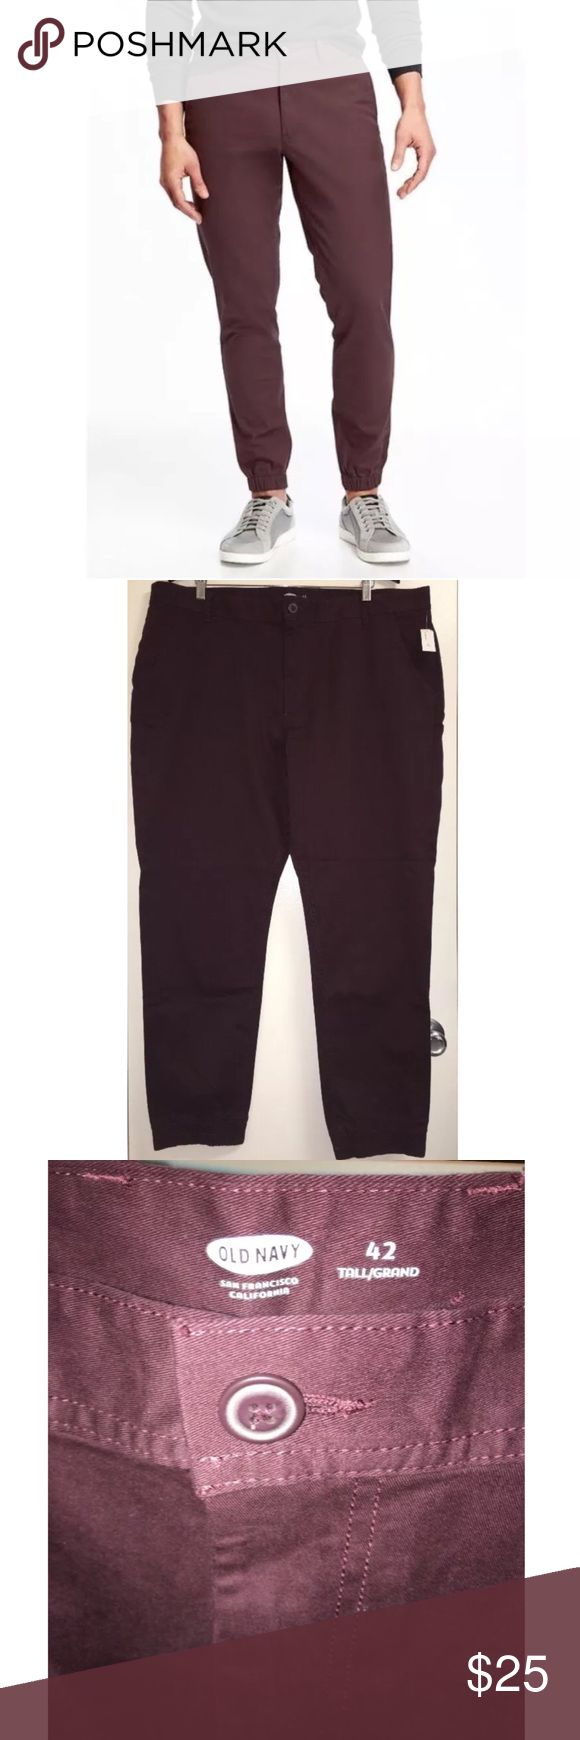 """Old Navy Khaki Stretch Maroon Jogger Pants 42 Tall This listing is for a pair of men'sOld Navy khaki jogger pants.  They are brand new with tags attached.  The inseam is 31.5"""" long.   Measuring across the waist is 21.75"""".  Measuring across the hips is 26.5"""".  If you have anyquestions, pleasecontact me! Old Navy Pants Chinos & Khakis"""